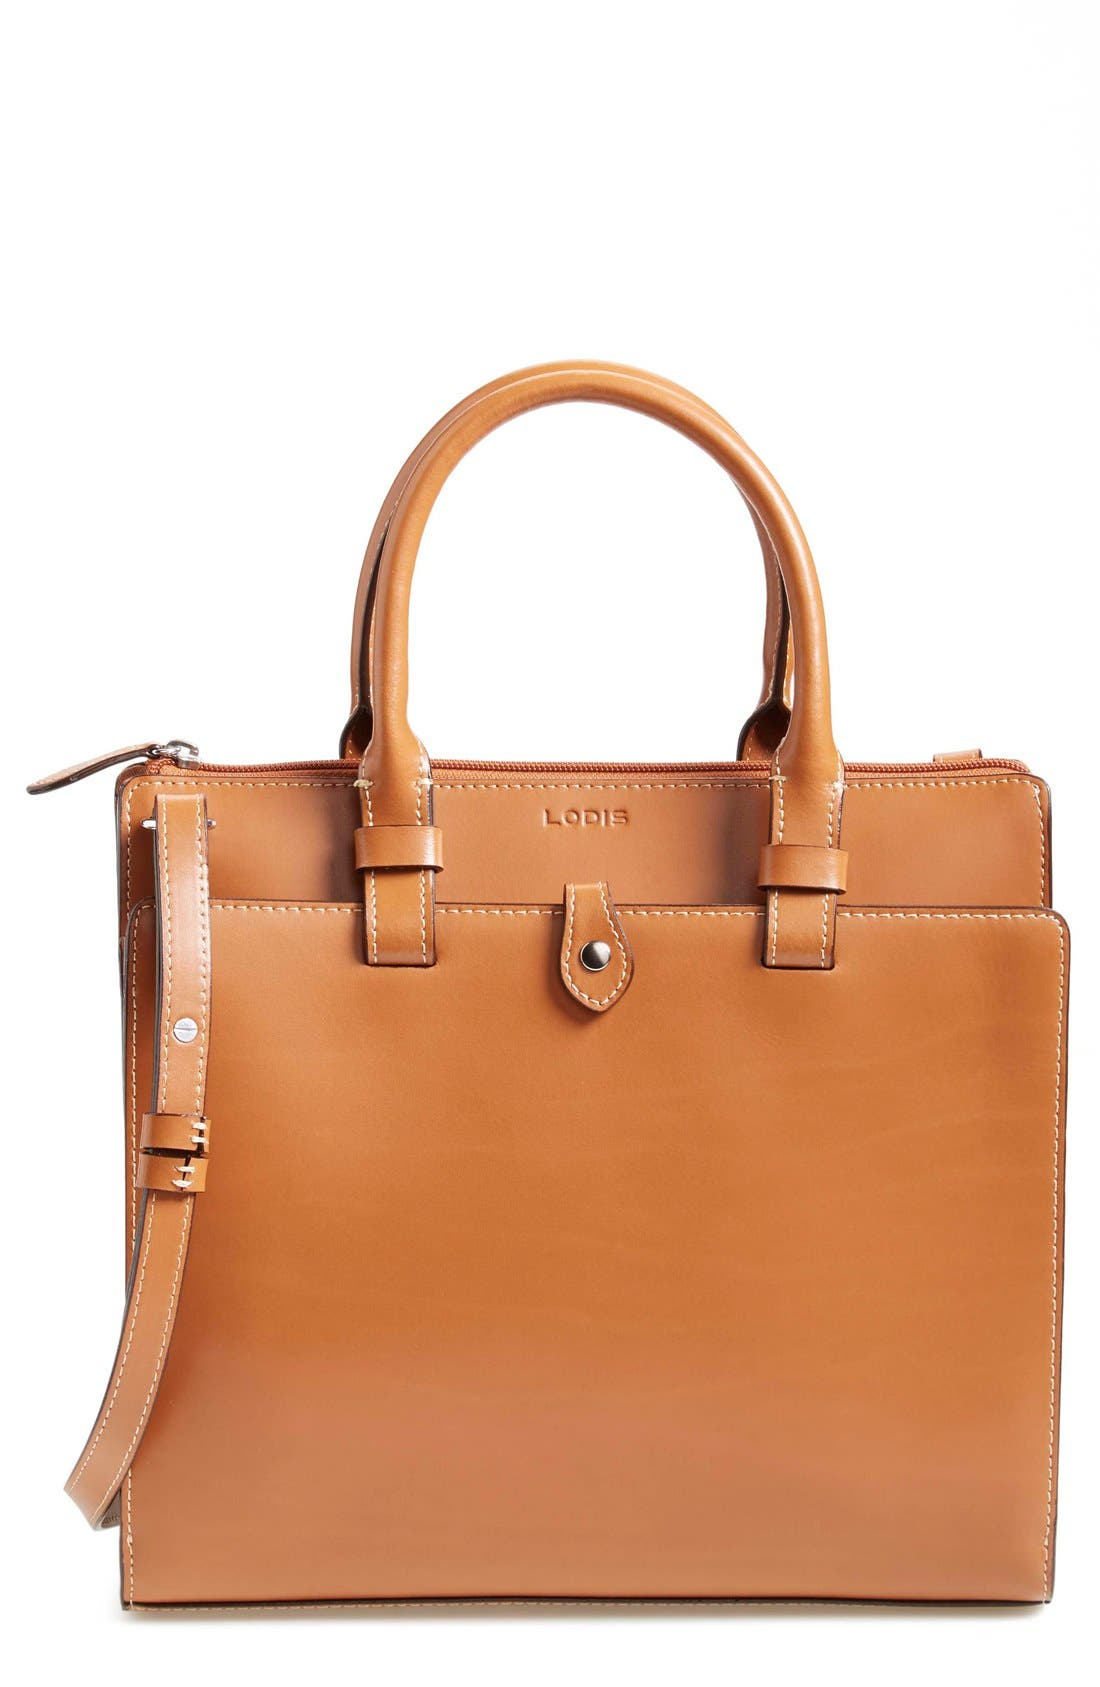 Lodis 'Linda - Medium' Satchel